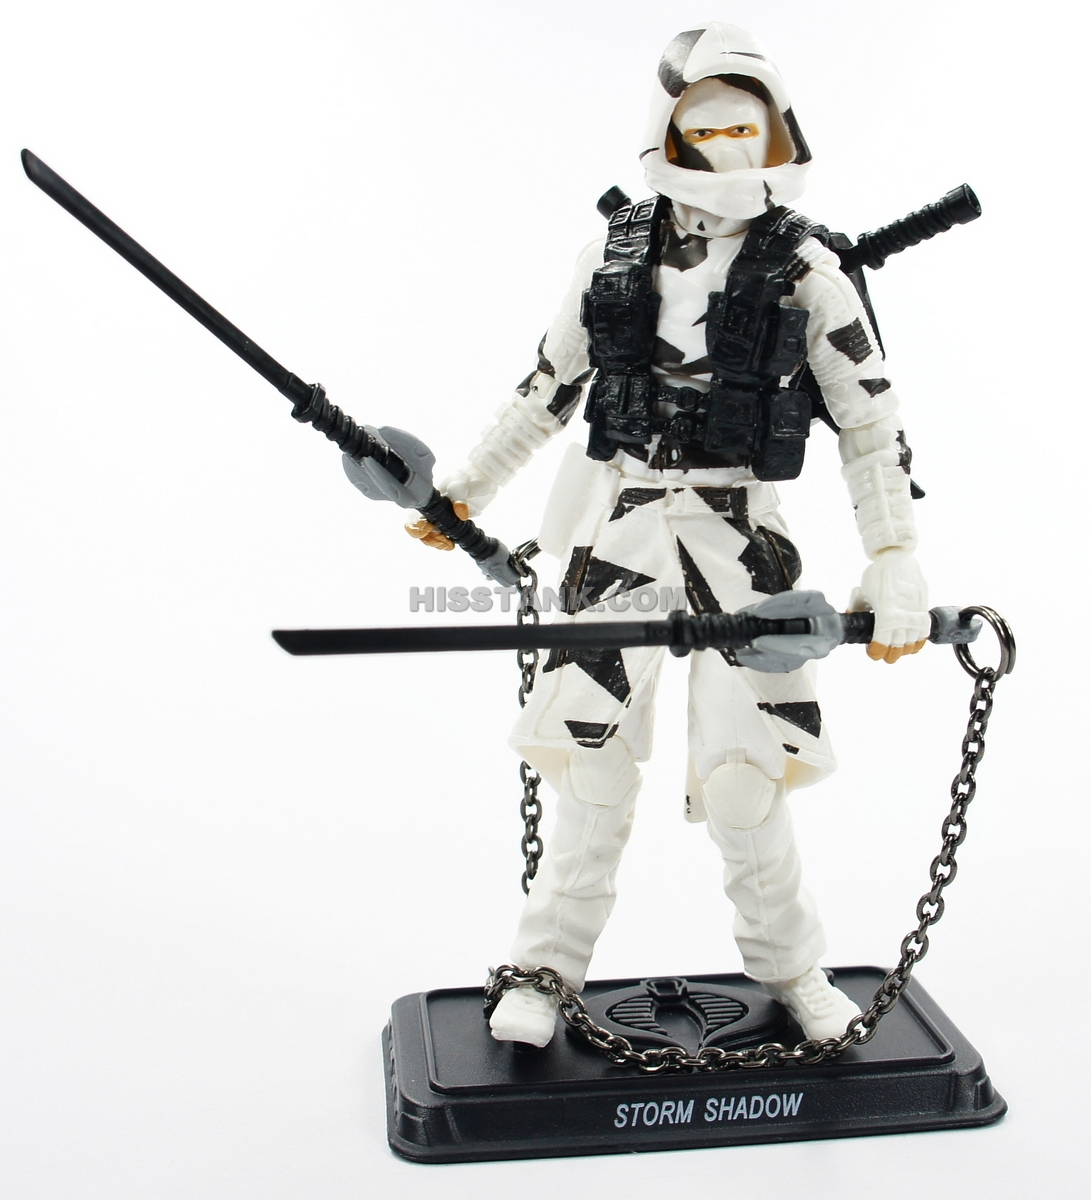 storm shadow sneak attack gi joe database